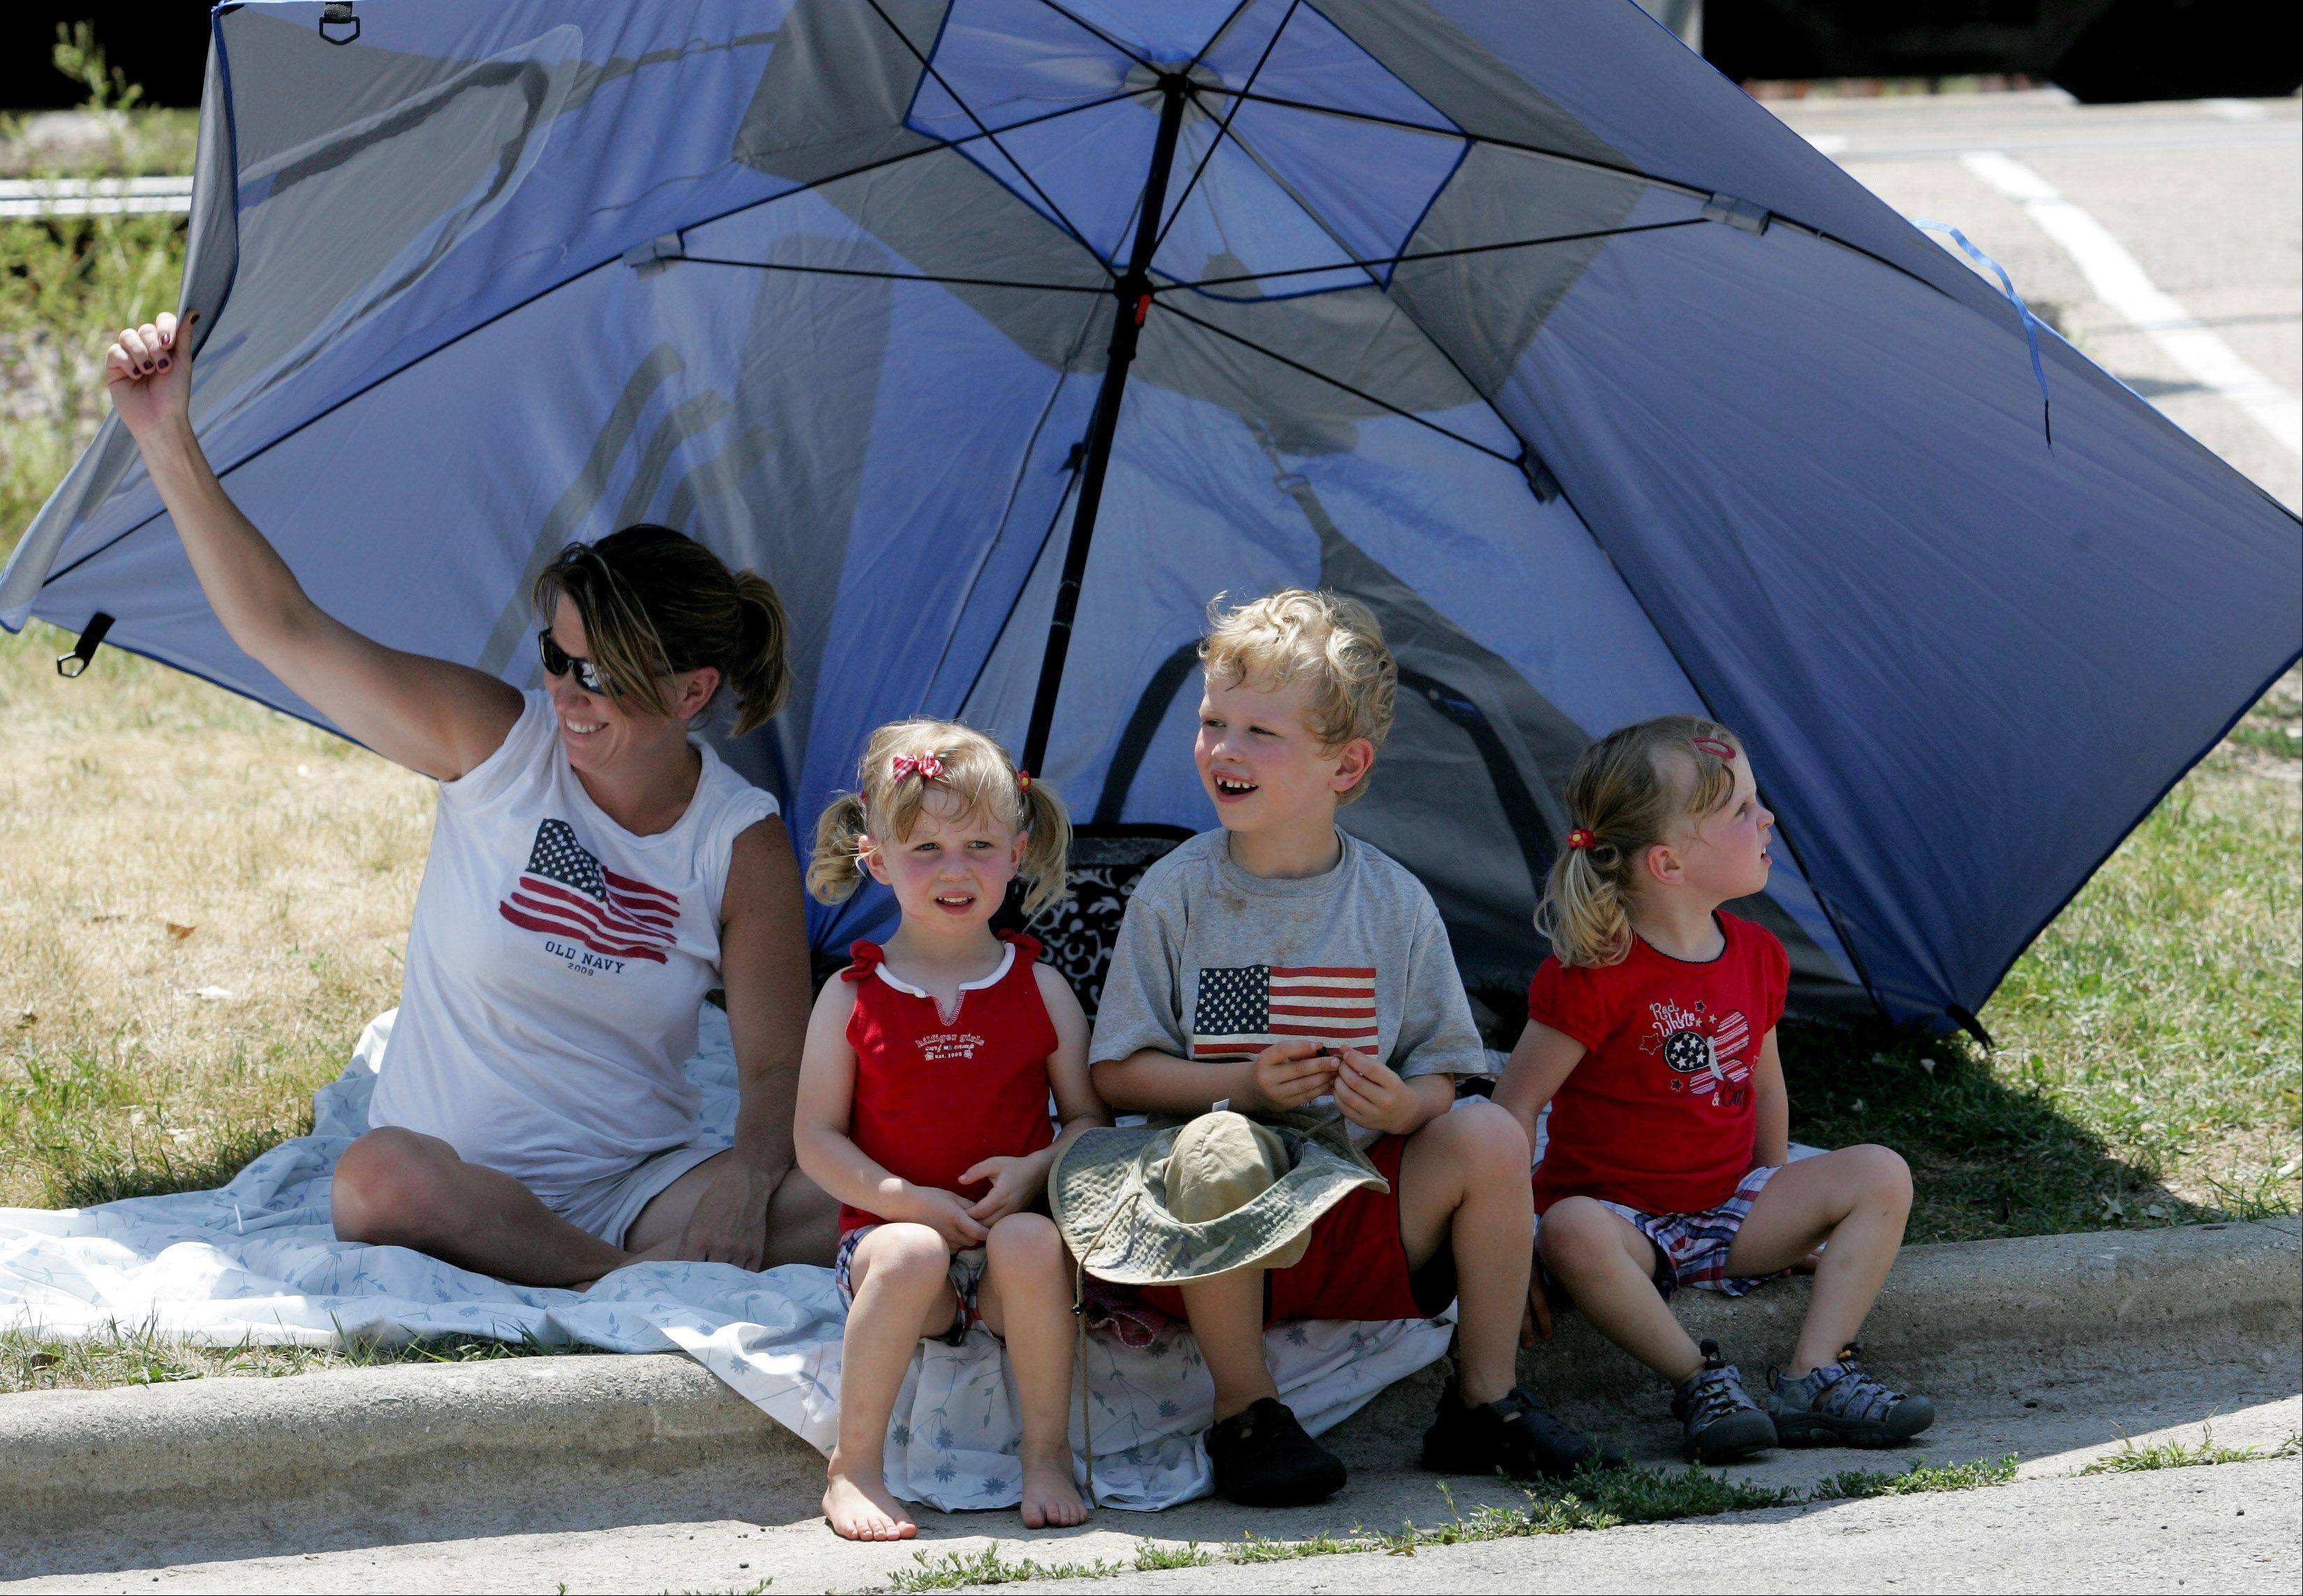 Janet Alman of Wheaton uses a big umbrella for shade while watching the 4th of July parade in Glen Ellyn on Wednesday with her kids, left to right, Sarah, 3, Jacob, 6 and Ashley, 3.